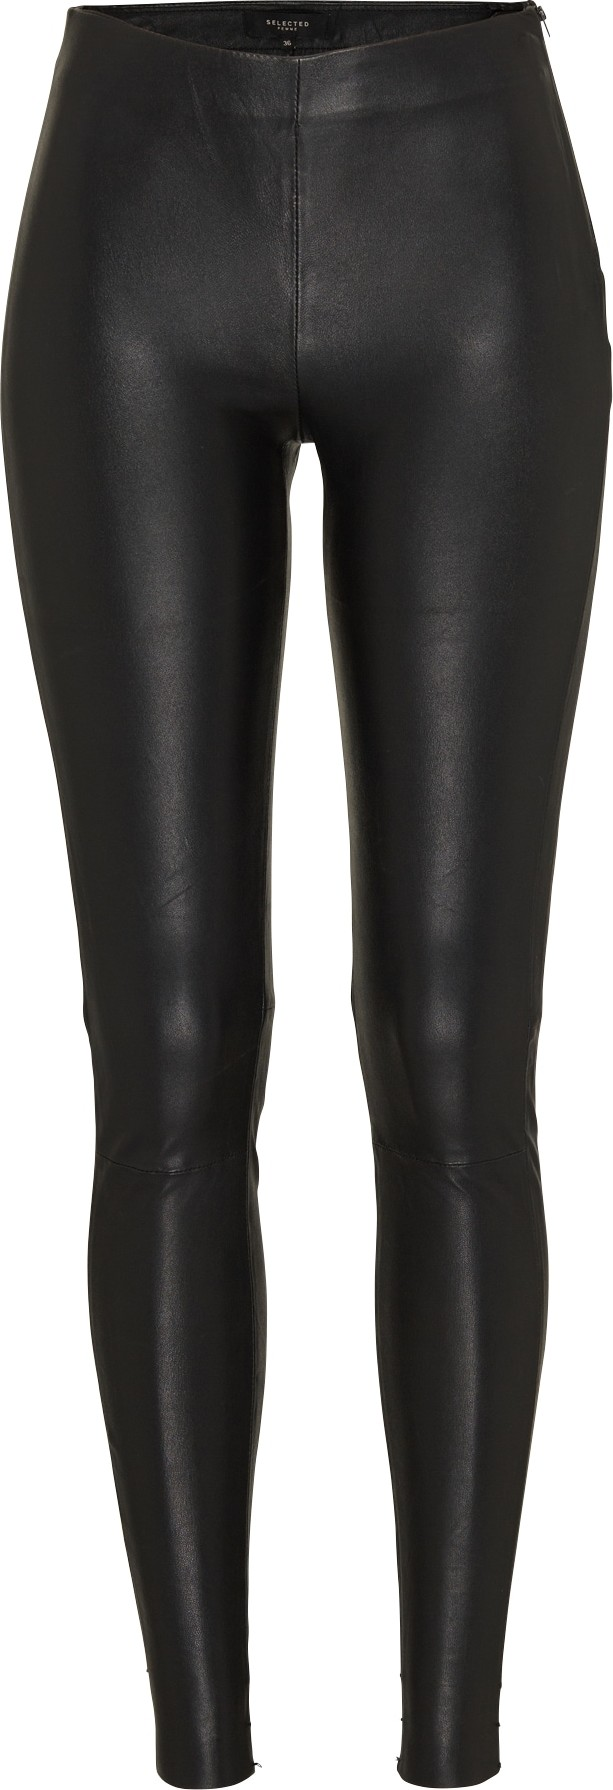 SELECTED FEMME Kalhoty SFSYLVIA MW STRETCH LEATHER černá Selected Femme